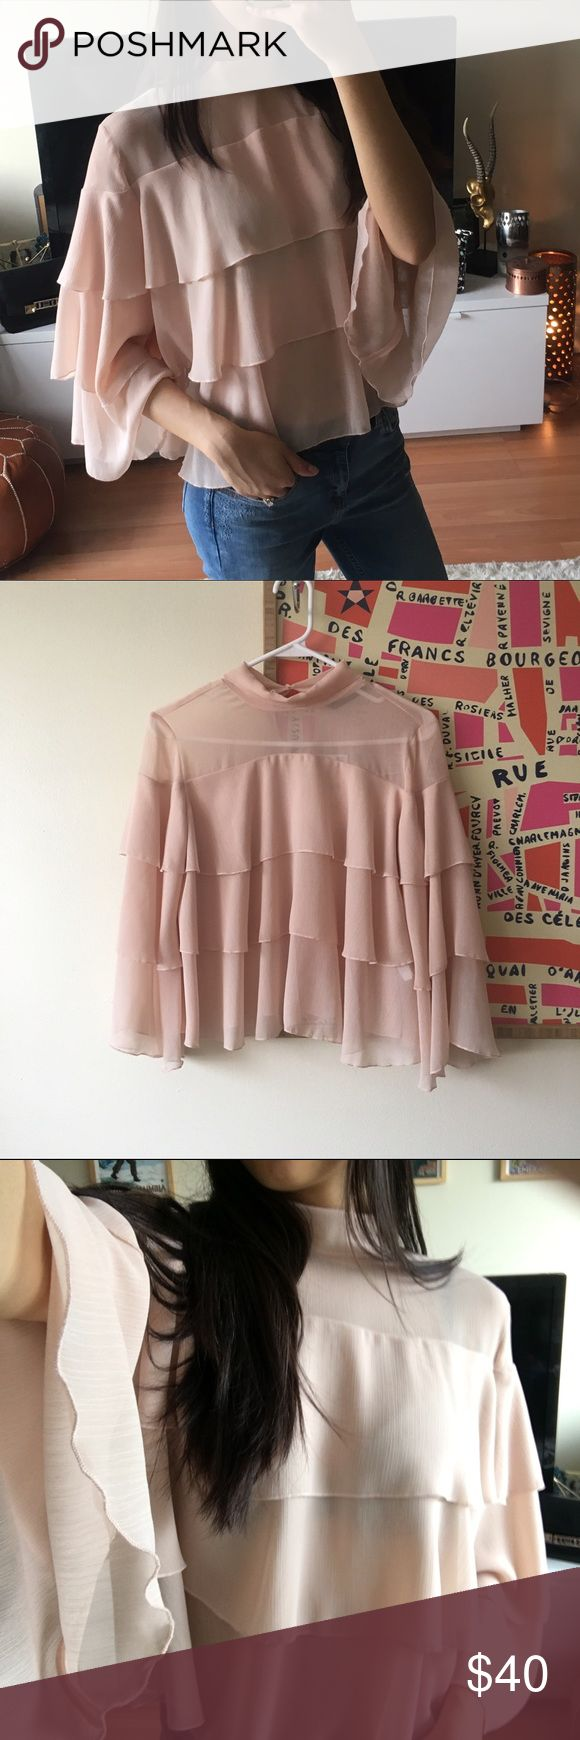 BNWT Zara ruffled tier Top XS Brand new never worn. 100% polyester. Doesn't wrinkle easily. Slightly Sheer at top layer Zara Tops